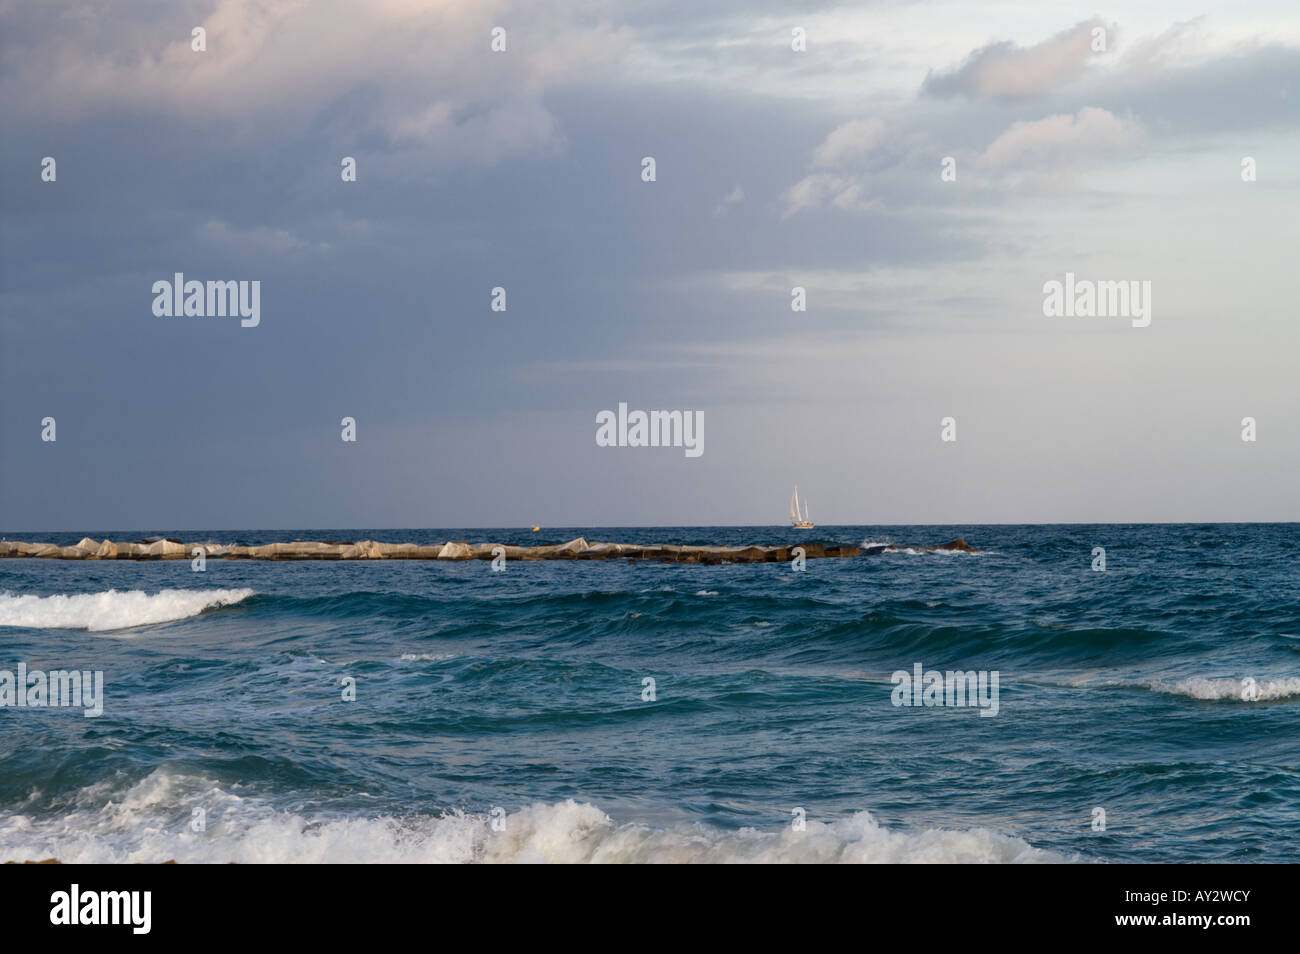 Sailing boat in the Mediterranian sea in Barcelona (Spain) on a winter day - Stock Image